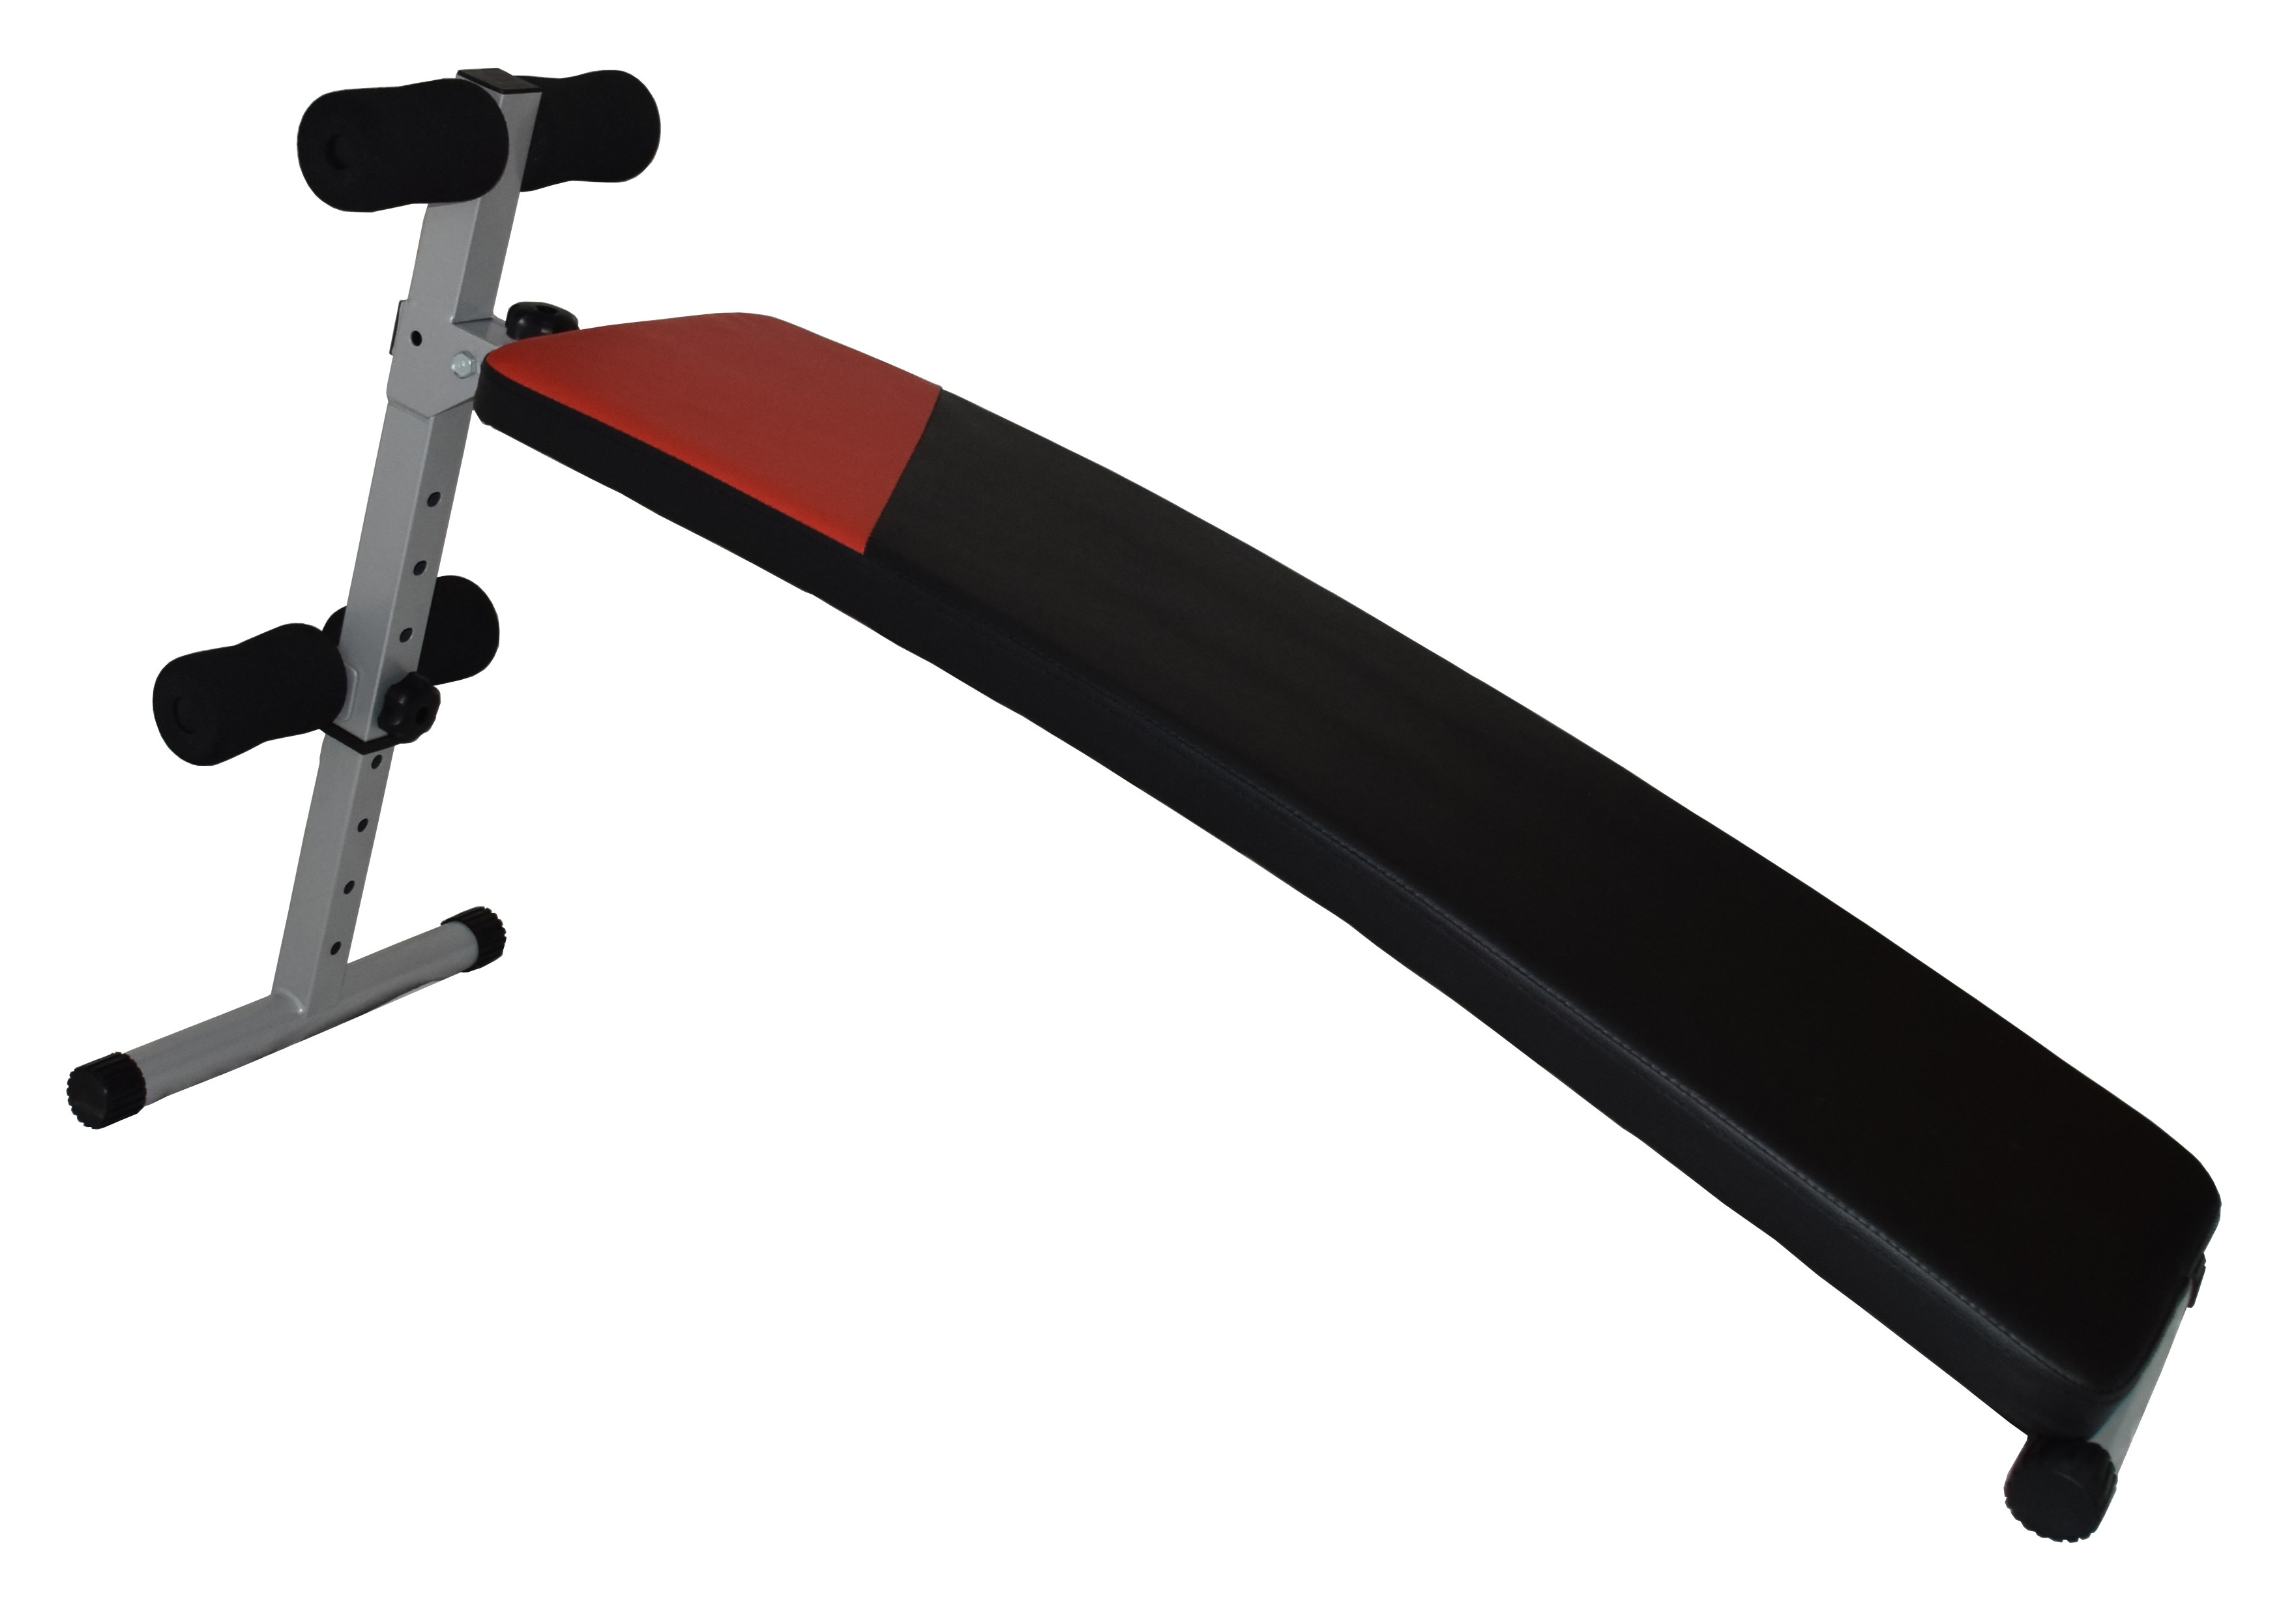 bench gym gold com weight olympic incline product xrs workout walmart reviews s